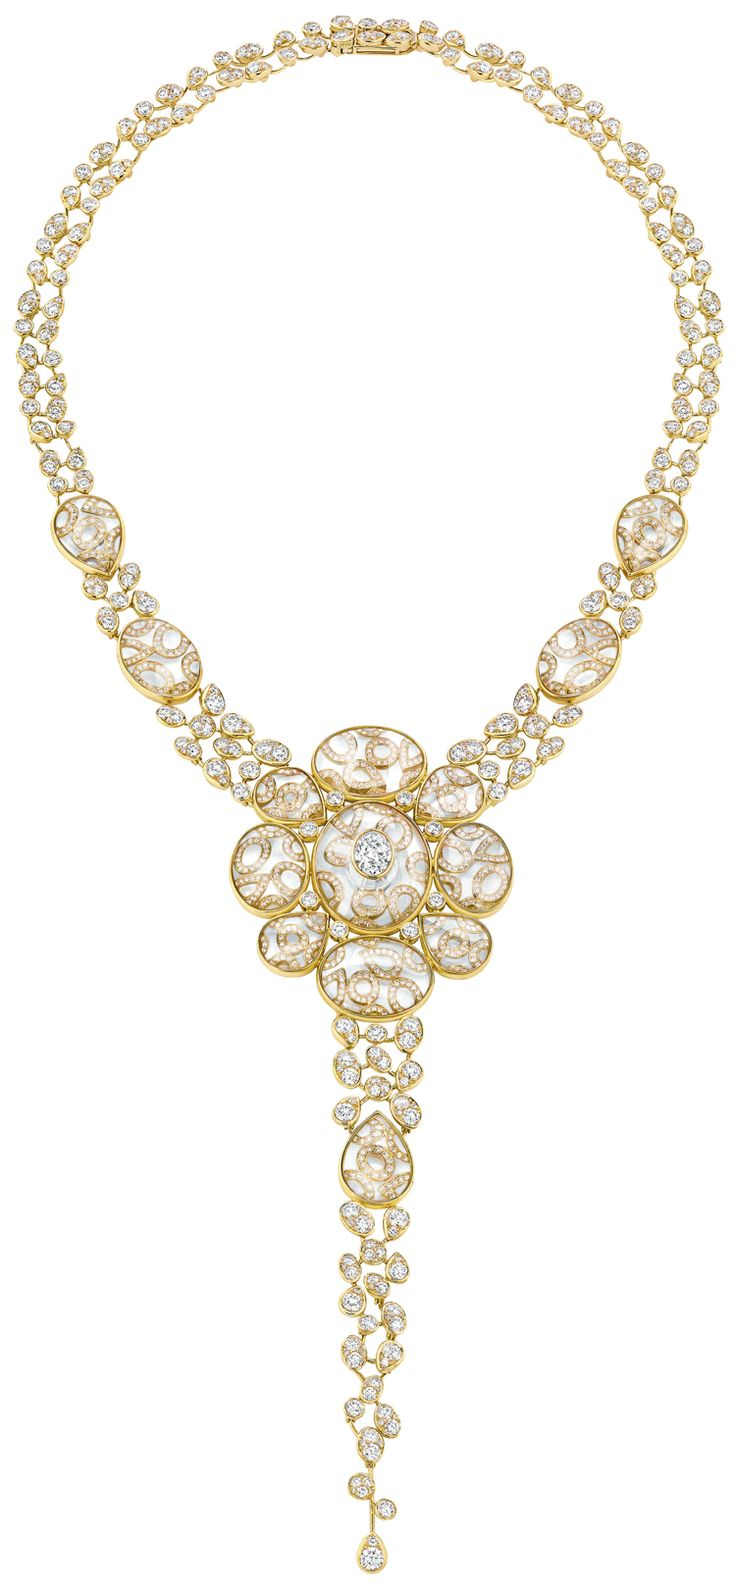 """""""Magnetique"""" #Necklace from #TalismansDeChanel - #Chanel - #FineJewellery collection in 18K yellow gold set with a 1.5 carat #OvalCut - #Diamond, 1151 #BrilliantCut - #Diamonds (total weight 21.2 carats) and 28 #CabochonCut crystals (total weight 101 carats) july 2015"""